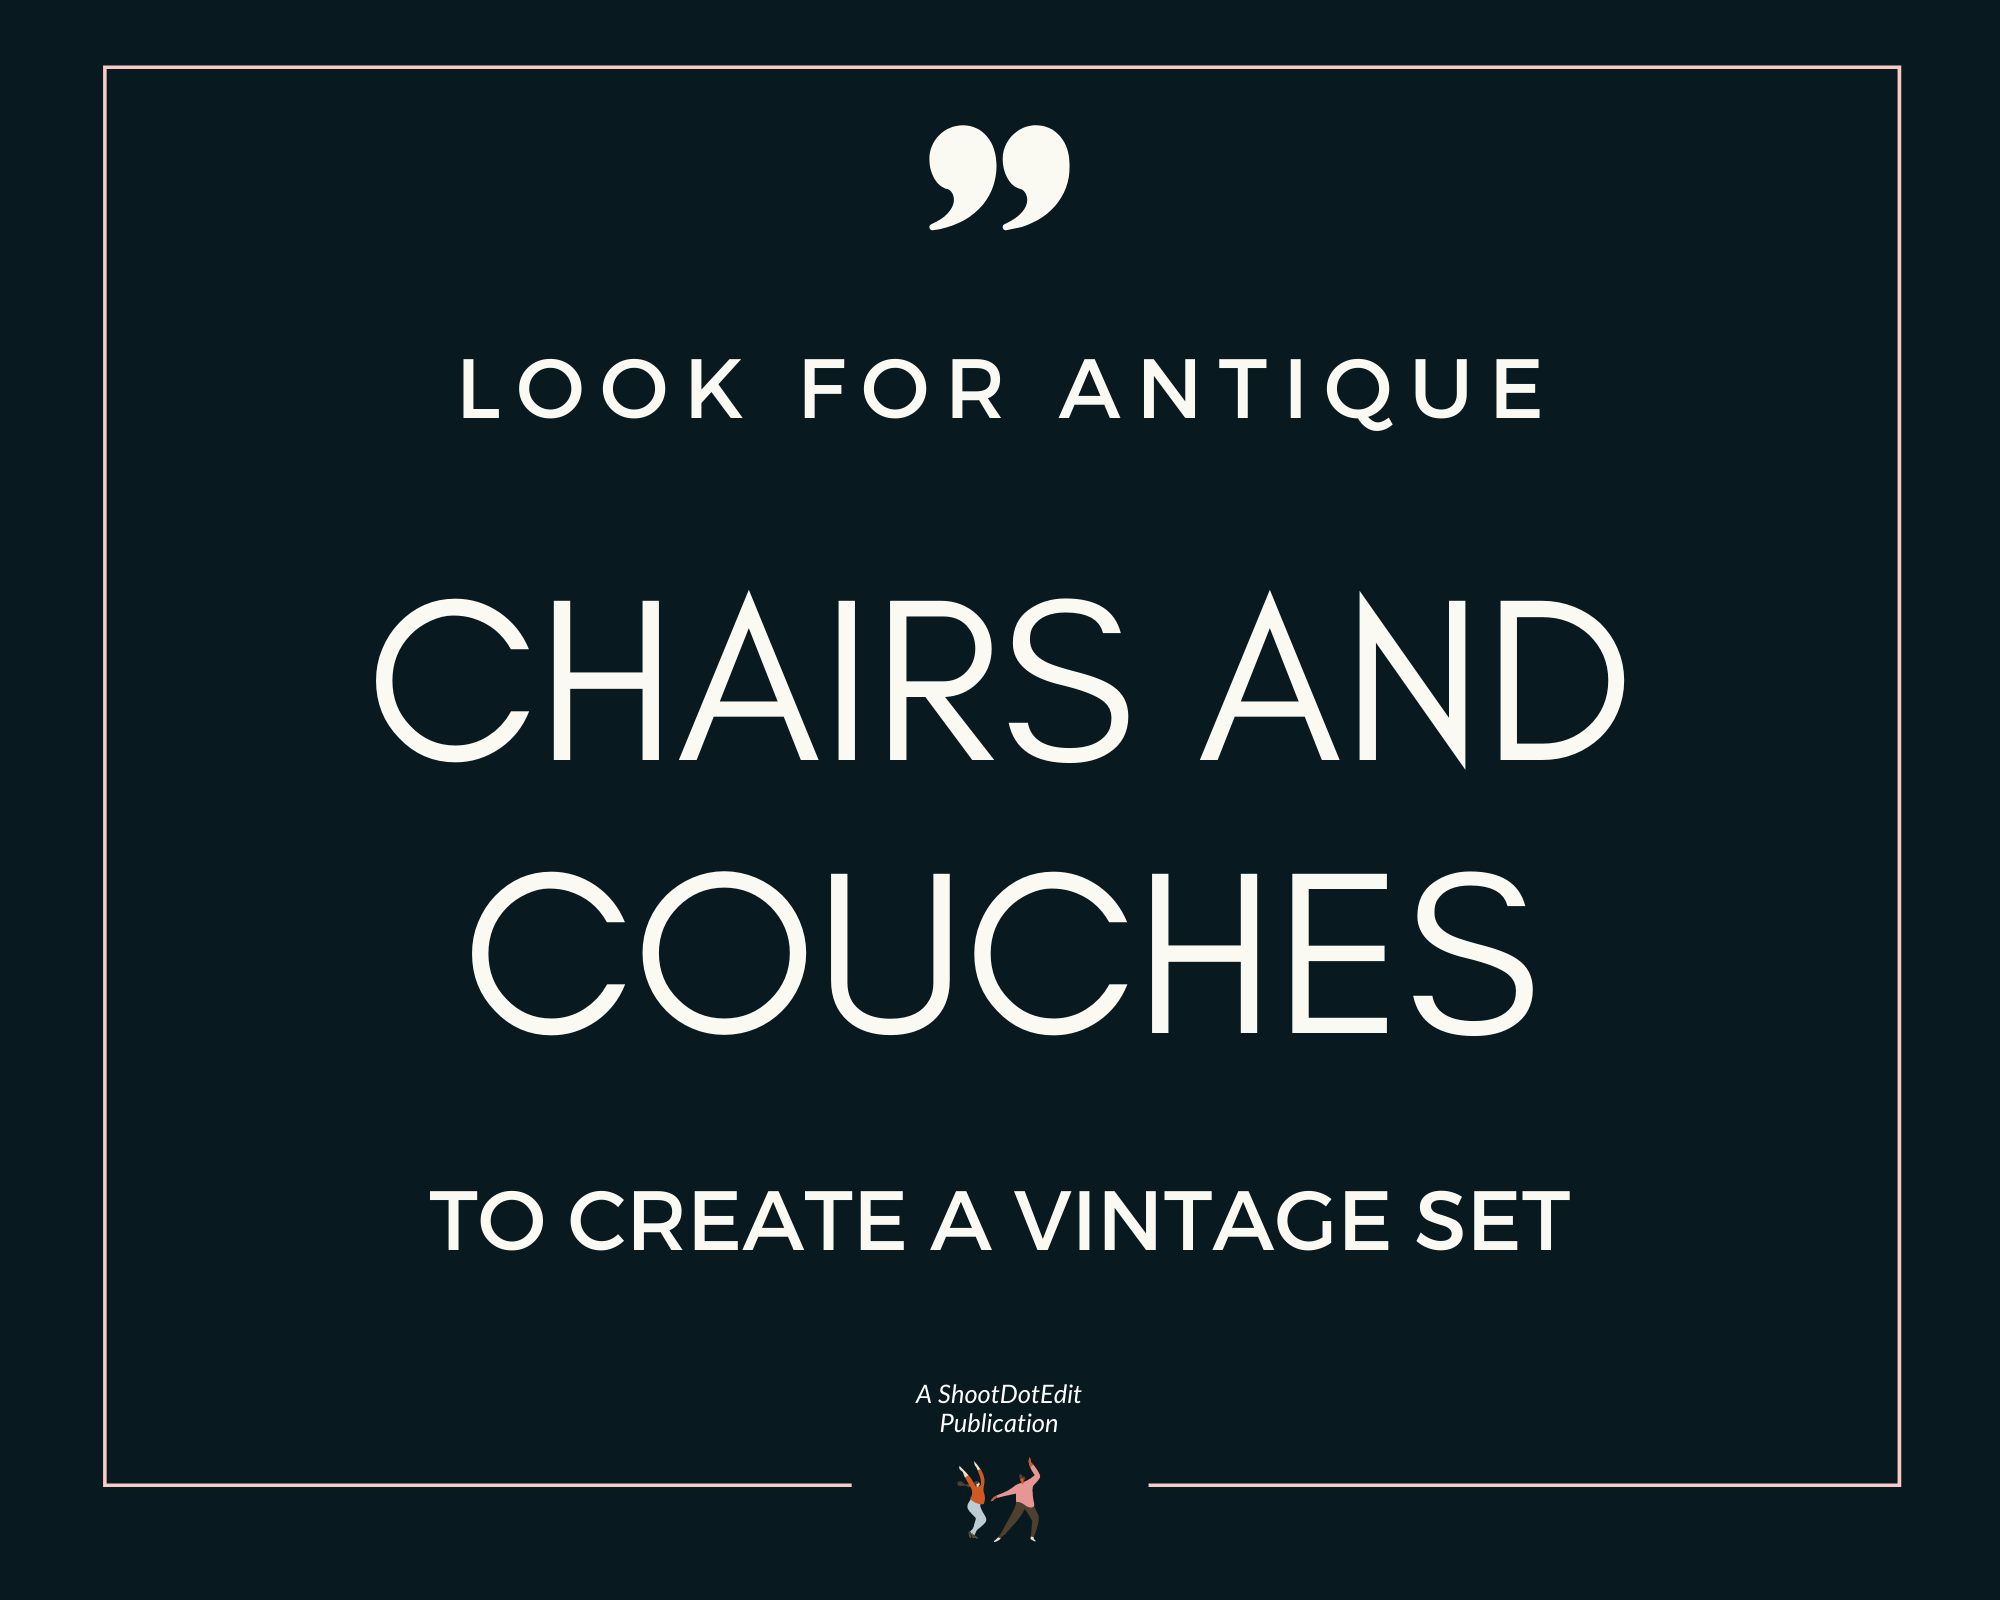 Infographic stating look for antique chairs and couches to create a vintage set